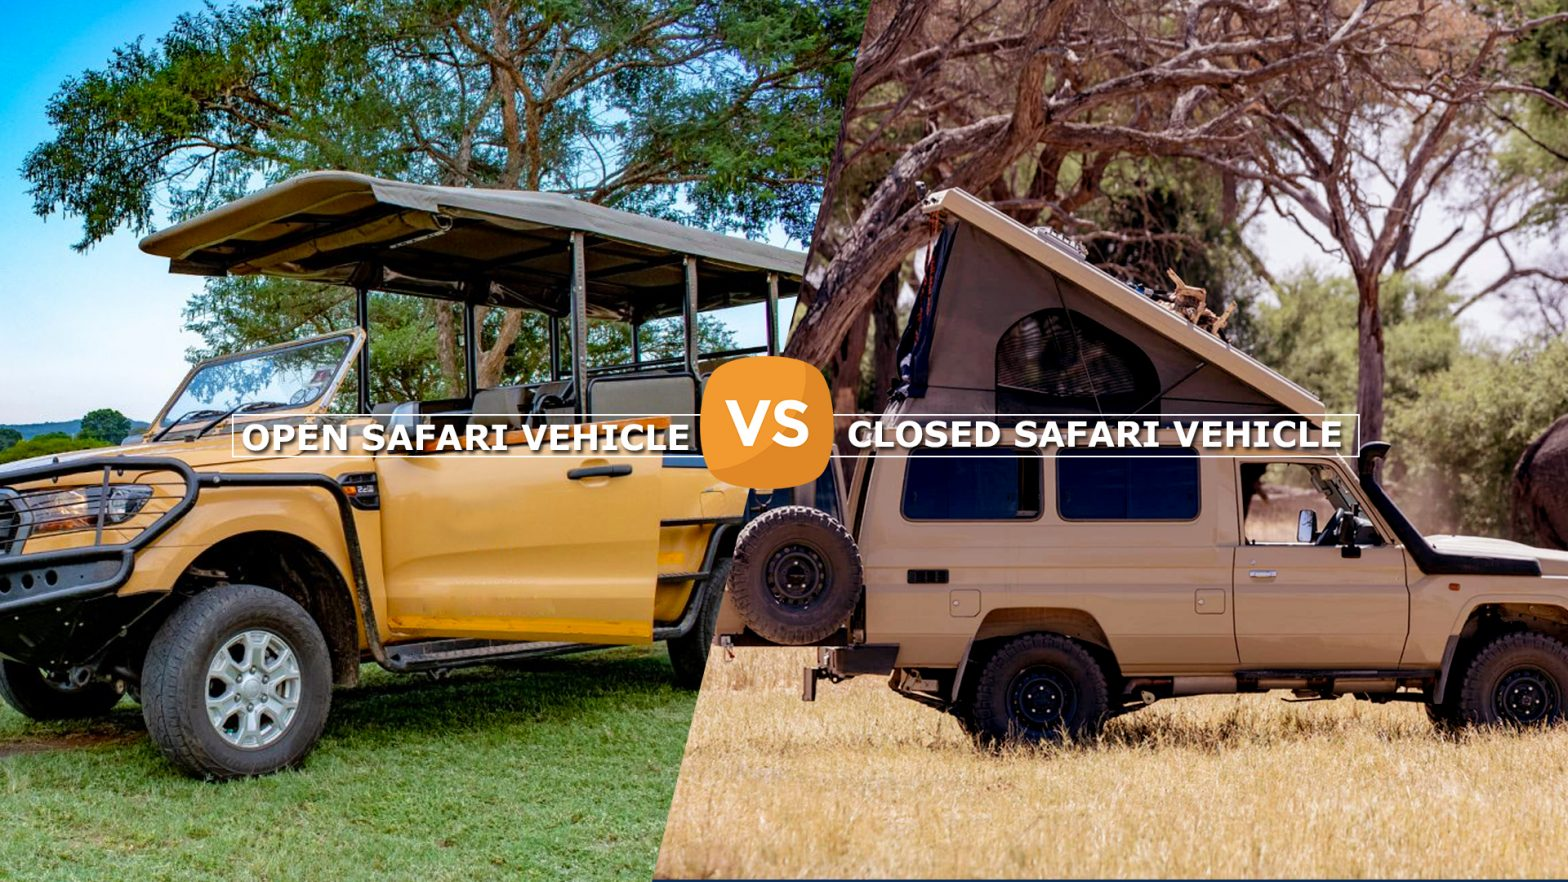 open safari vehicle vs closed safari vehicle